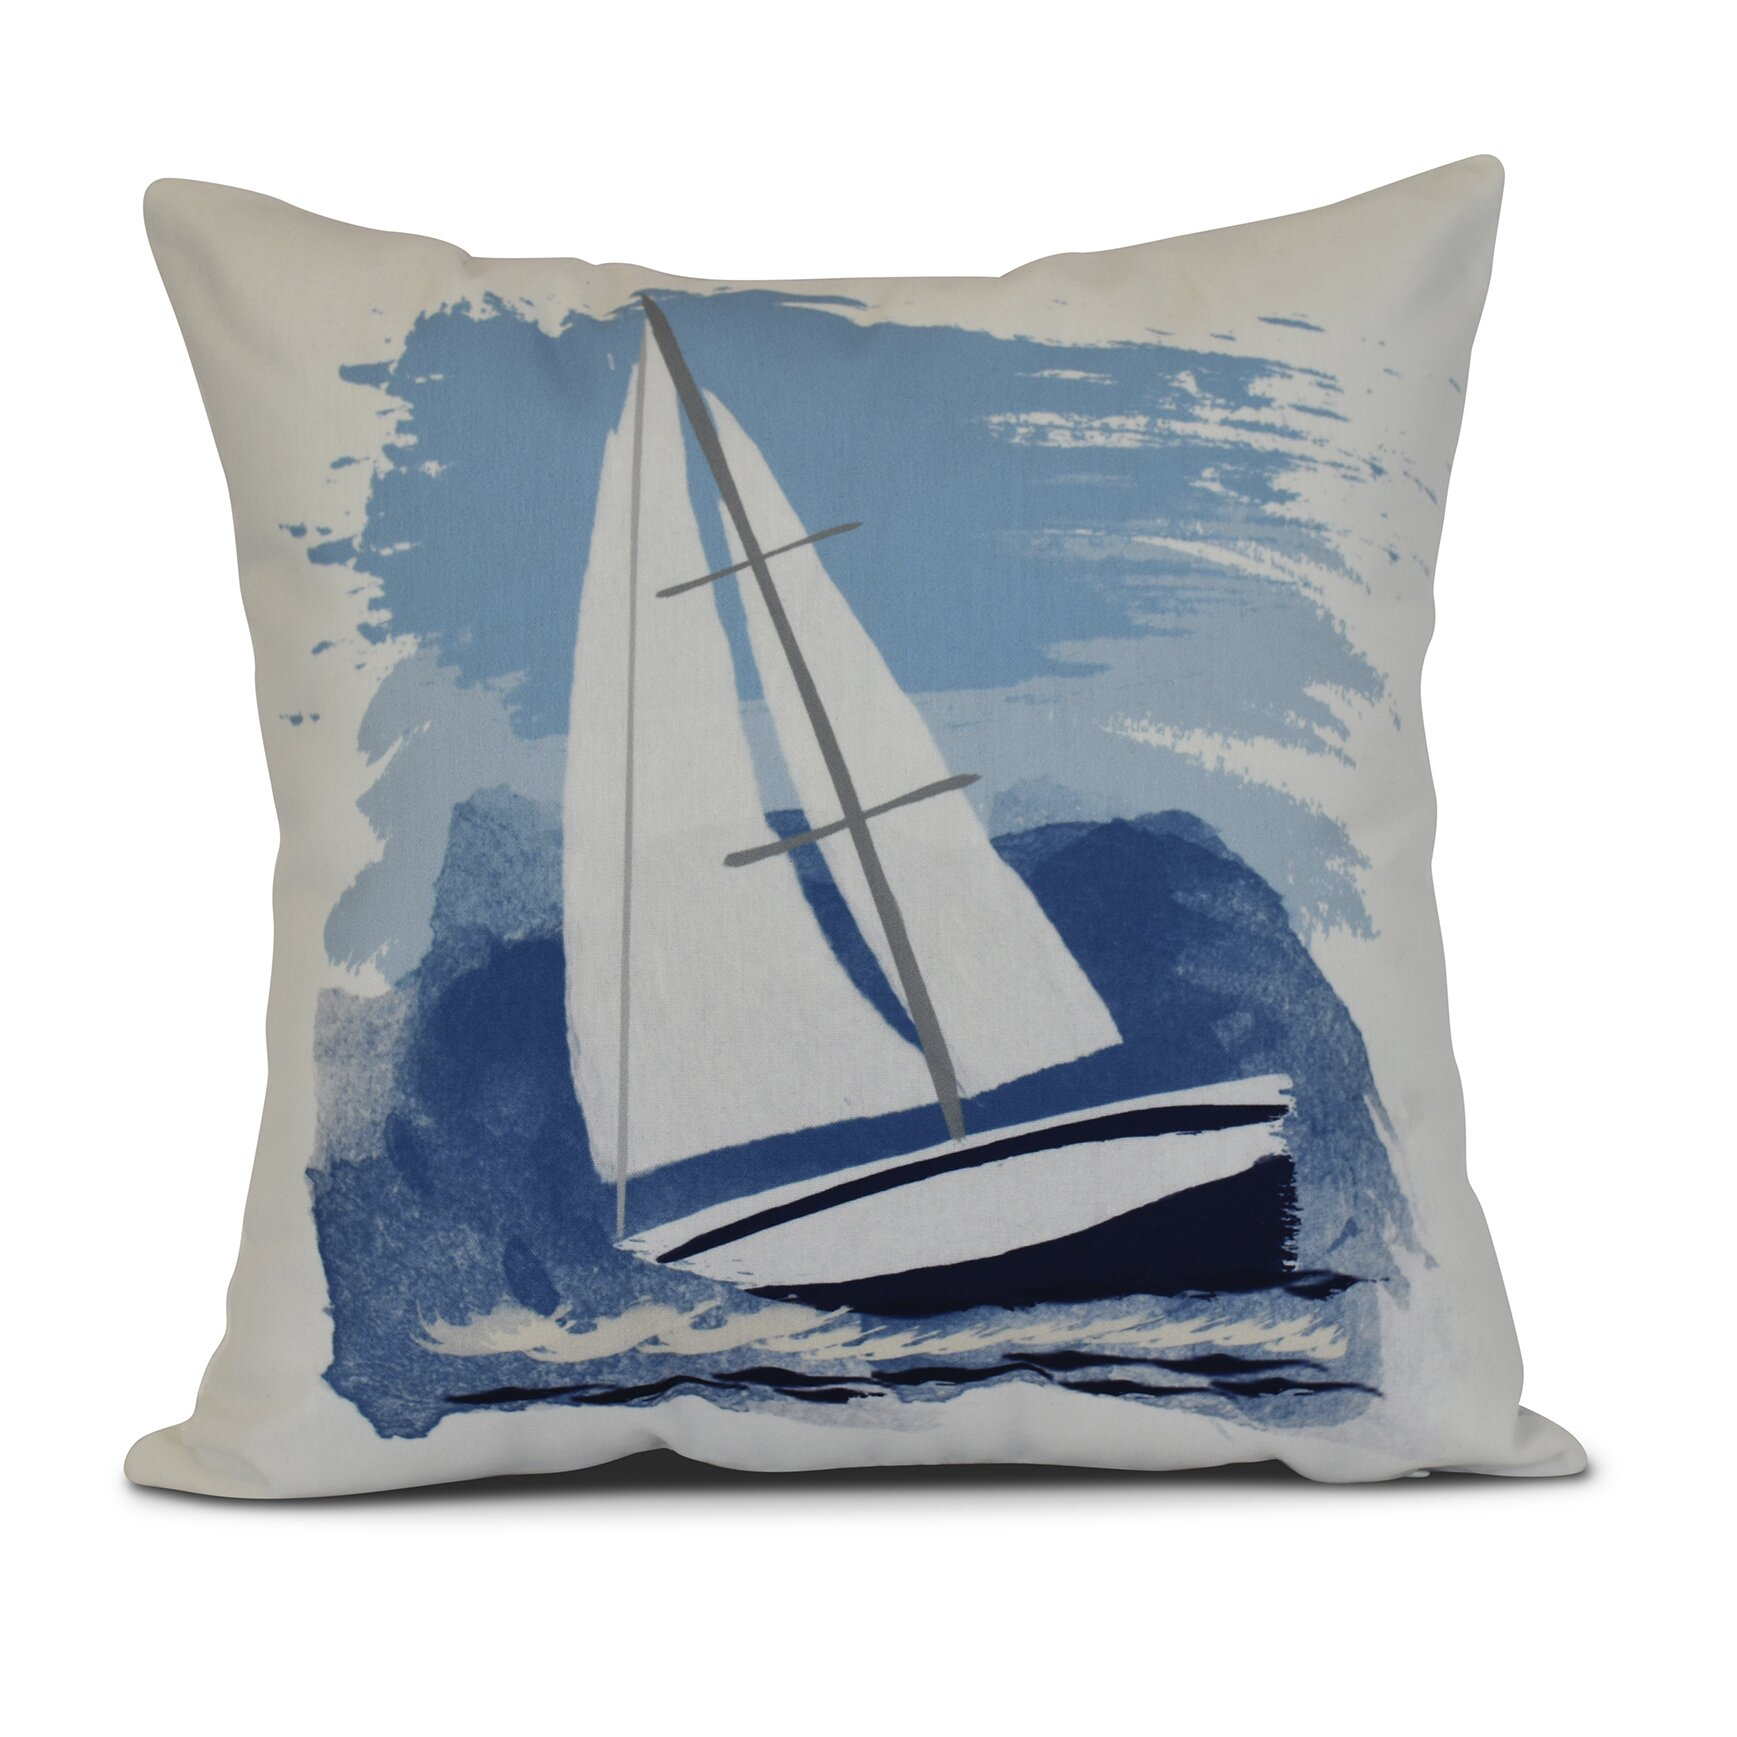 Throw Pillows The Bay : Breakwater Bay Bartow Sailing the Seas Throw Pillow Wayfair